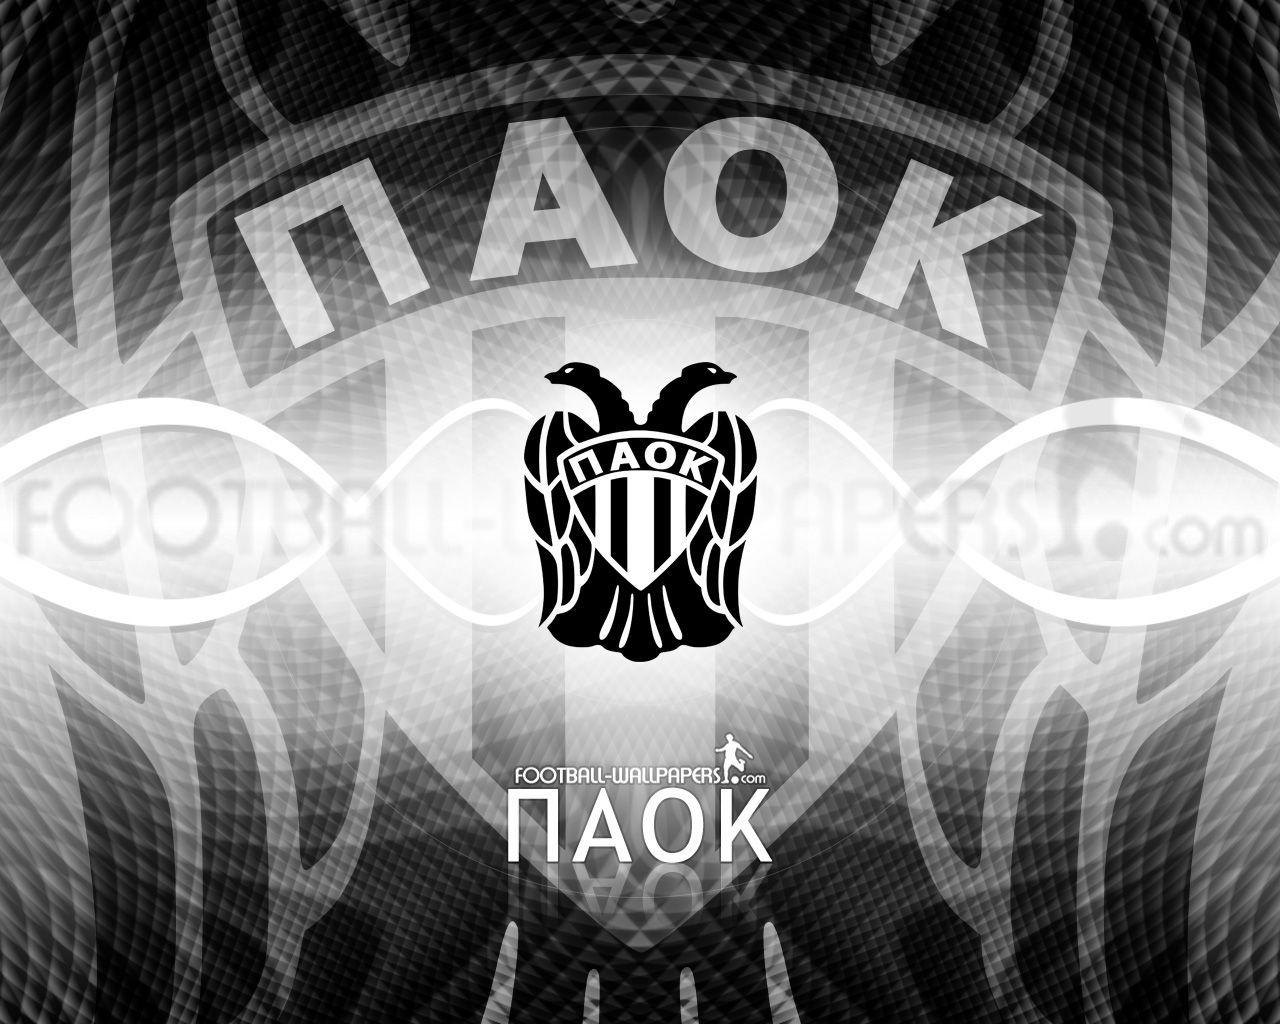 Paok Football Wallpapers Wallpapers: Players, Teams, Leagues Wallpapers